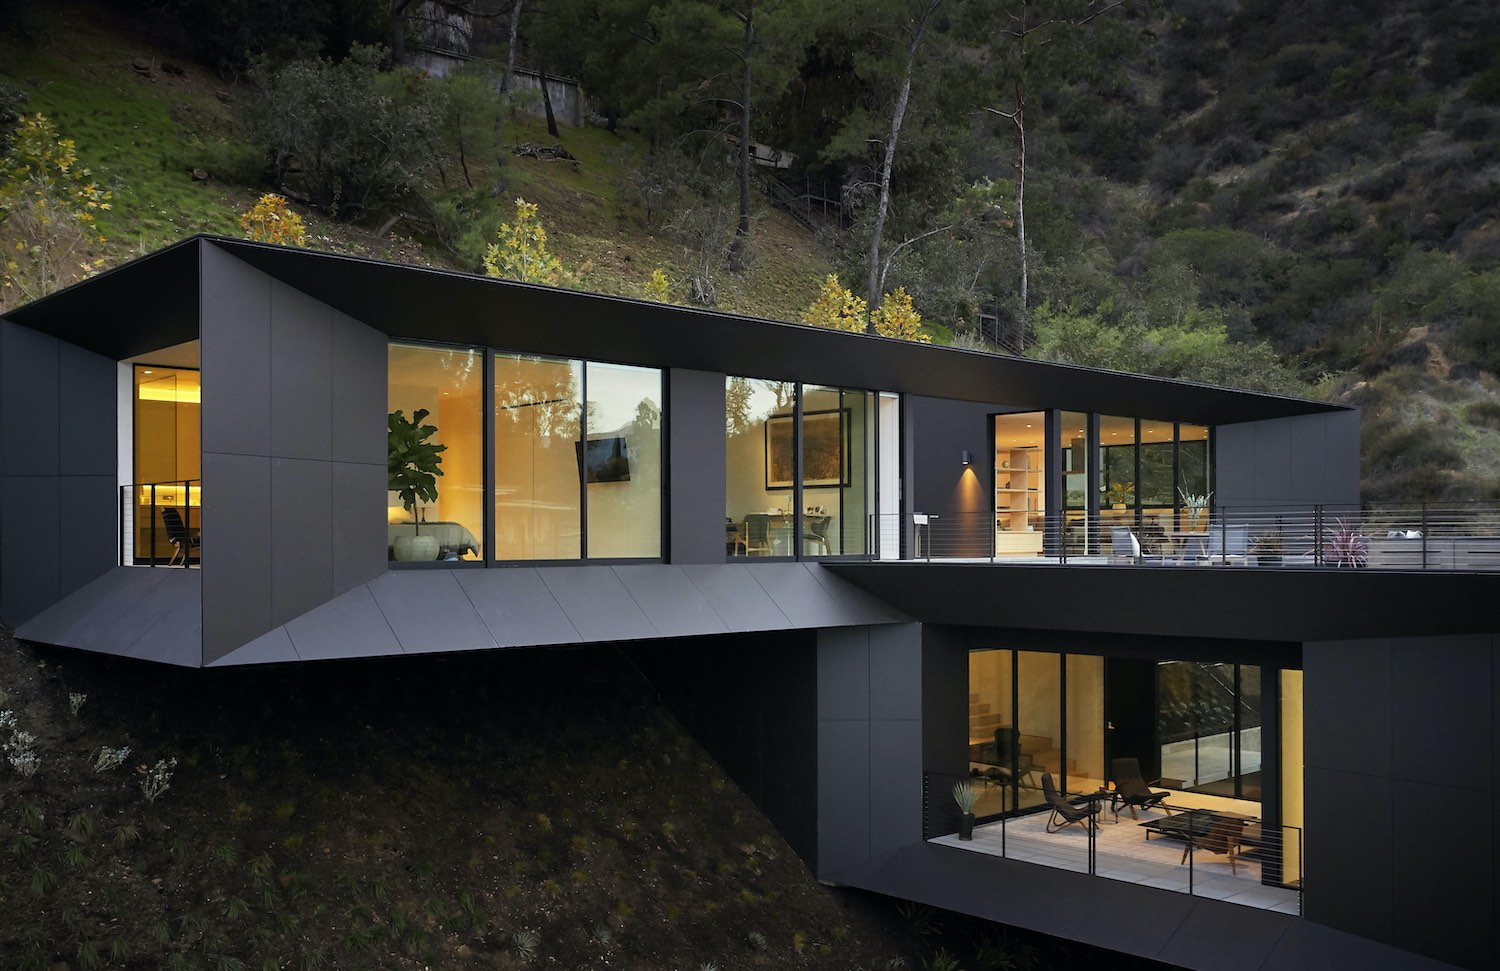 black modern house on a hill surrounded by trees